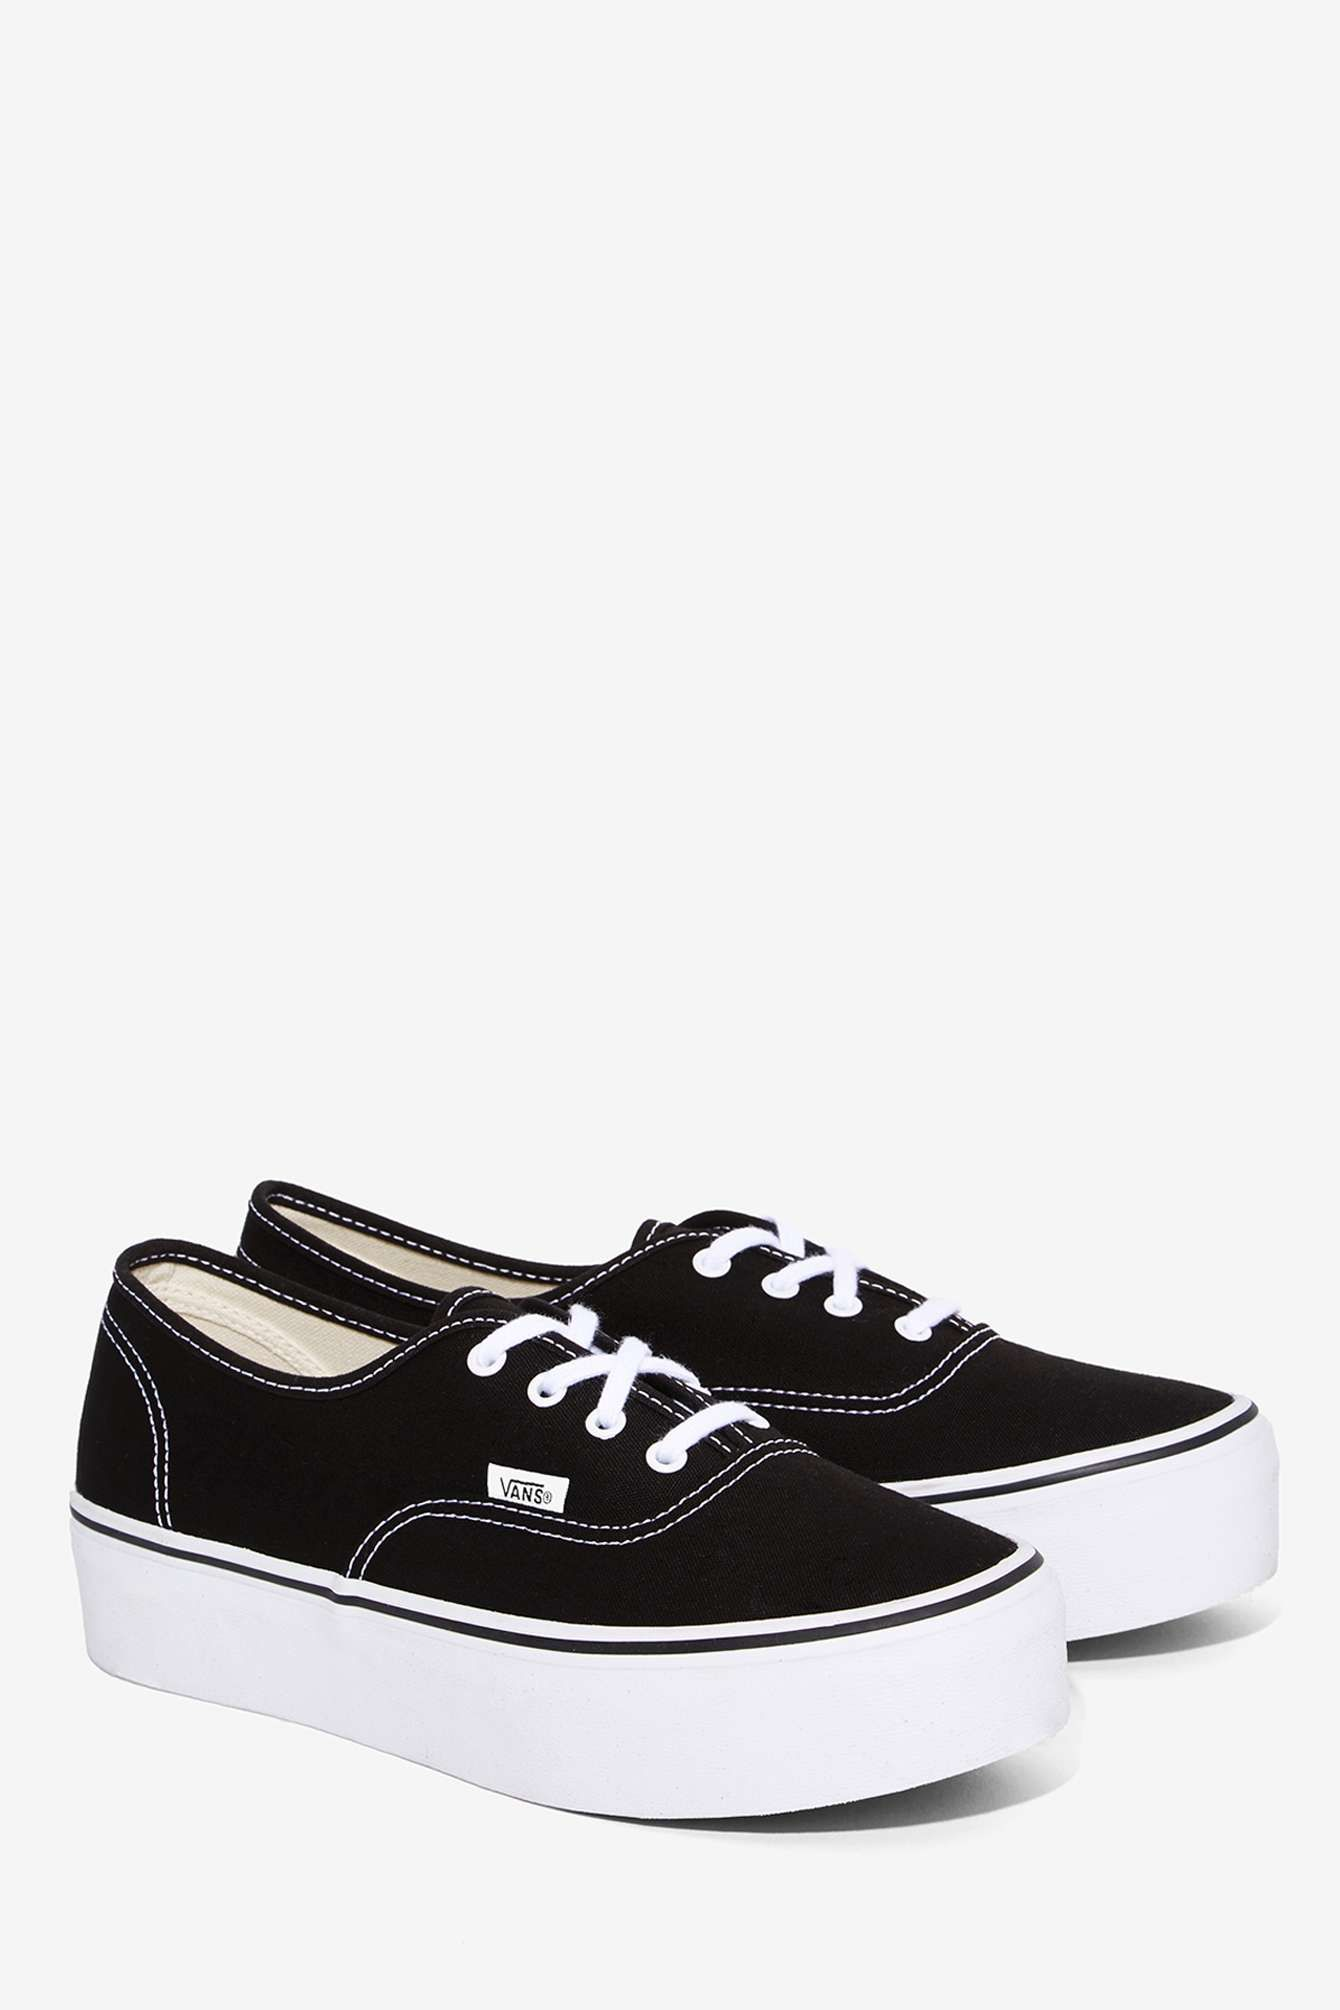 c68ef1210a1 Vans Authentic Platform Sneaker - Black